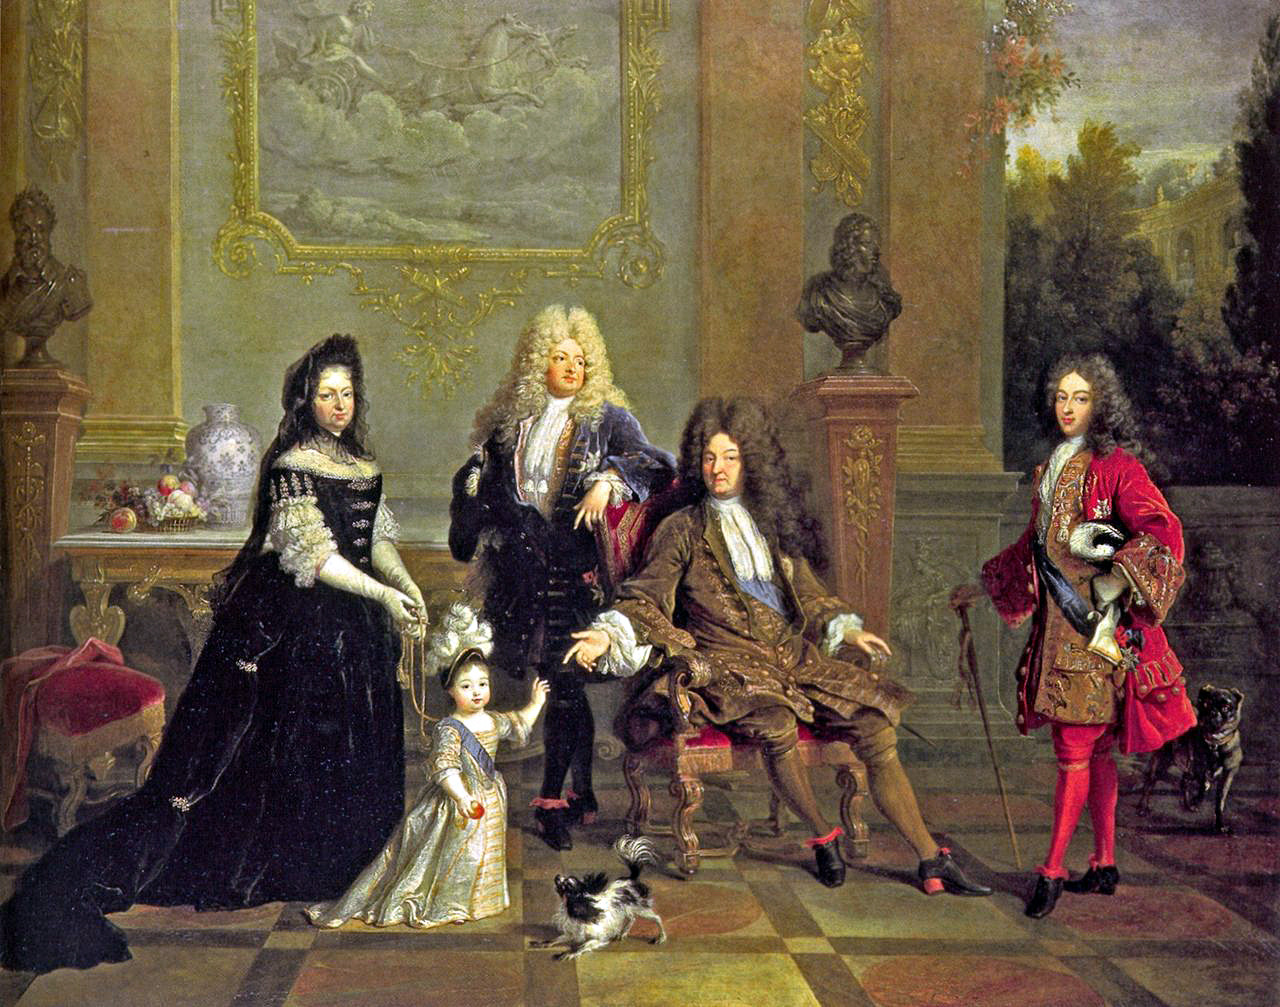 "A composite portrait of the Bourbon succession, made in the period 1715-1720. At the centre of the portrait is the Sun King, Louis XIV, most illustrious of his dynasty. His father (Louis XIII) and grandfather (Henry IV) are shown as busts. At the King's right is his son, Louis the Grand Dauphin; to the king's left is his eldest grandson, Louis, Duke of Burgundy. Both predeceased Louis XIV. The king gestures to his great-grandson, Louis Duke of Brittany, symbolising the older man's approval of his young heir. Madame de Ventadour, the young duke's governess (and the only non-royal in the painting) holds her charge's reins. Her presence references her role in ""saving"" the dynasty in the measles epidemic of 1712."